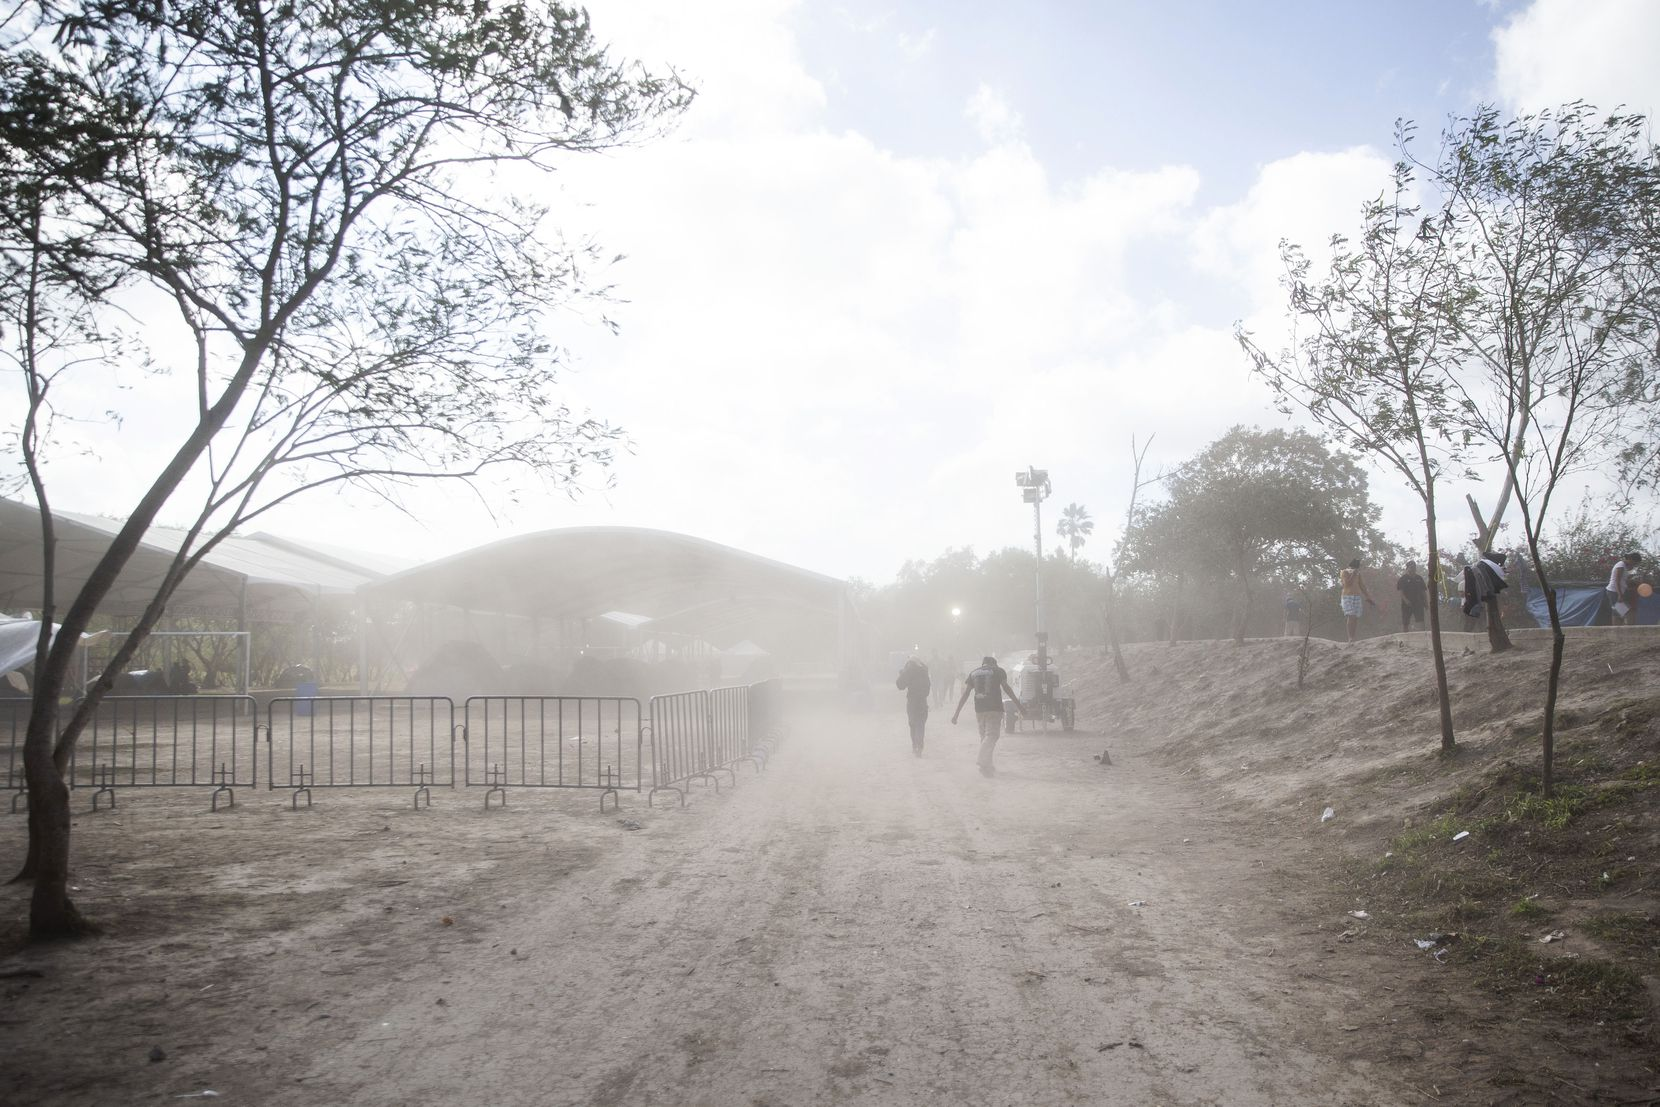 Asylum-seekers walk through a gust of dusty wind in the tent camps in Matamoros, Mexico, on Dec. 15, 2019.  The camp's living conditions have affected the health of residents, medical volunteers said.